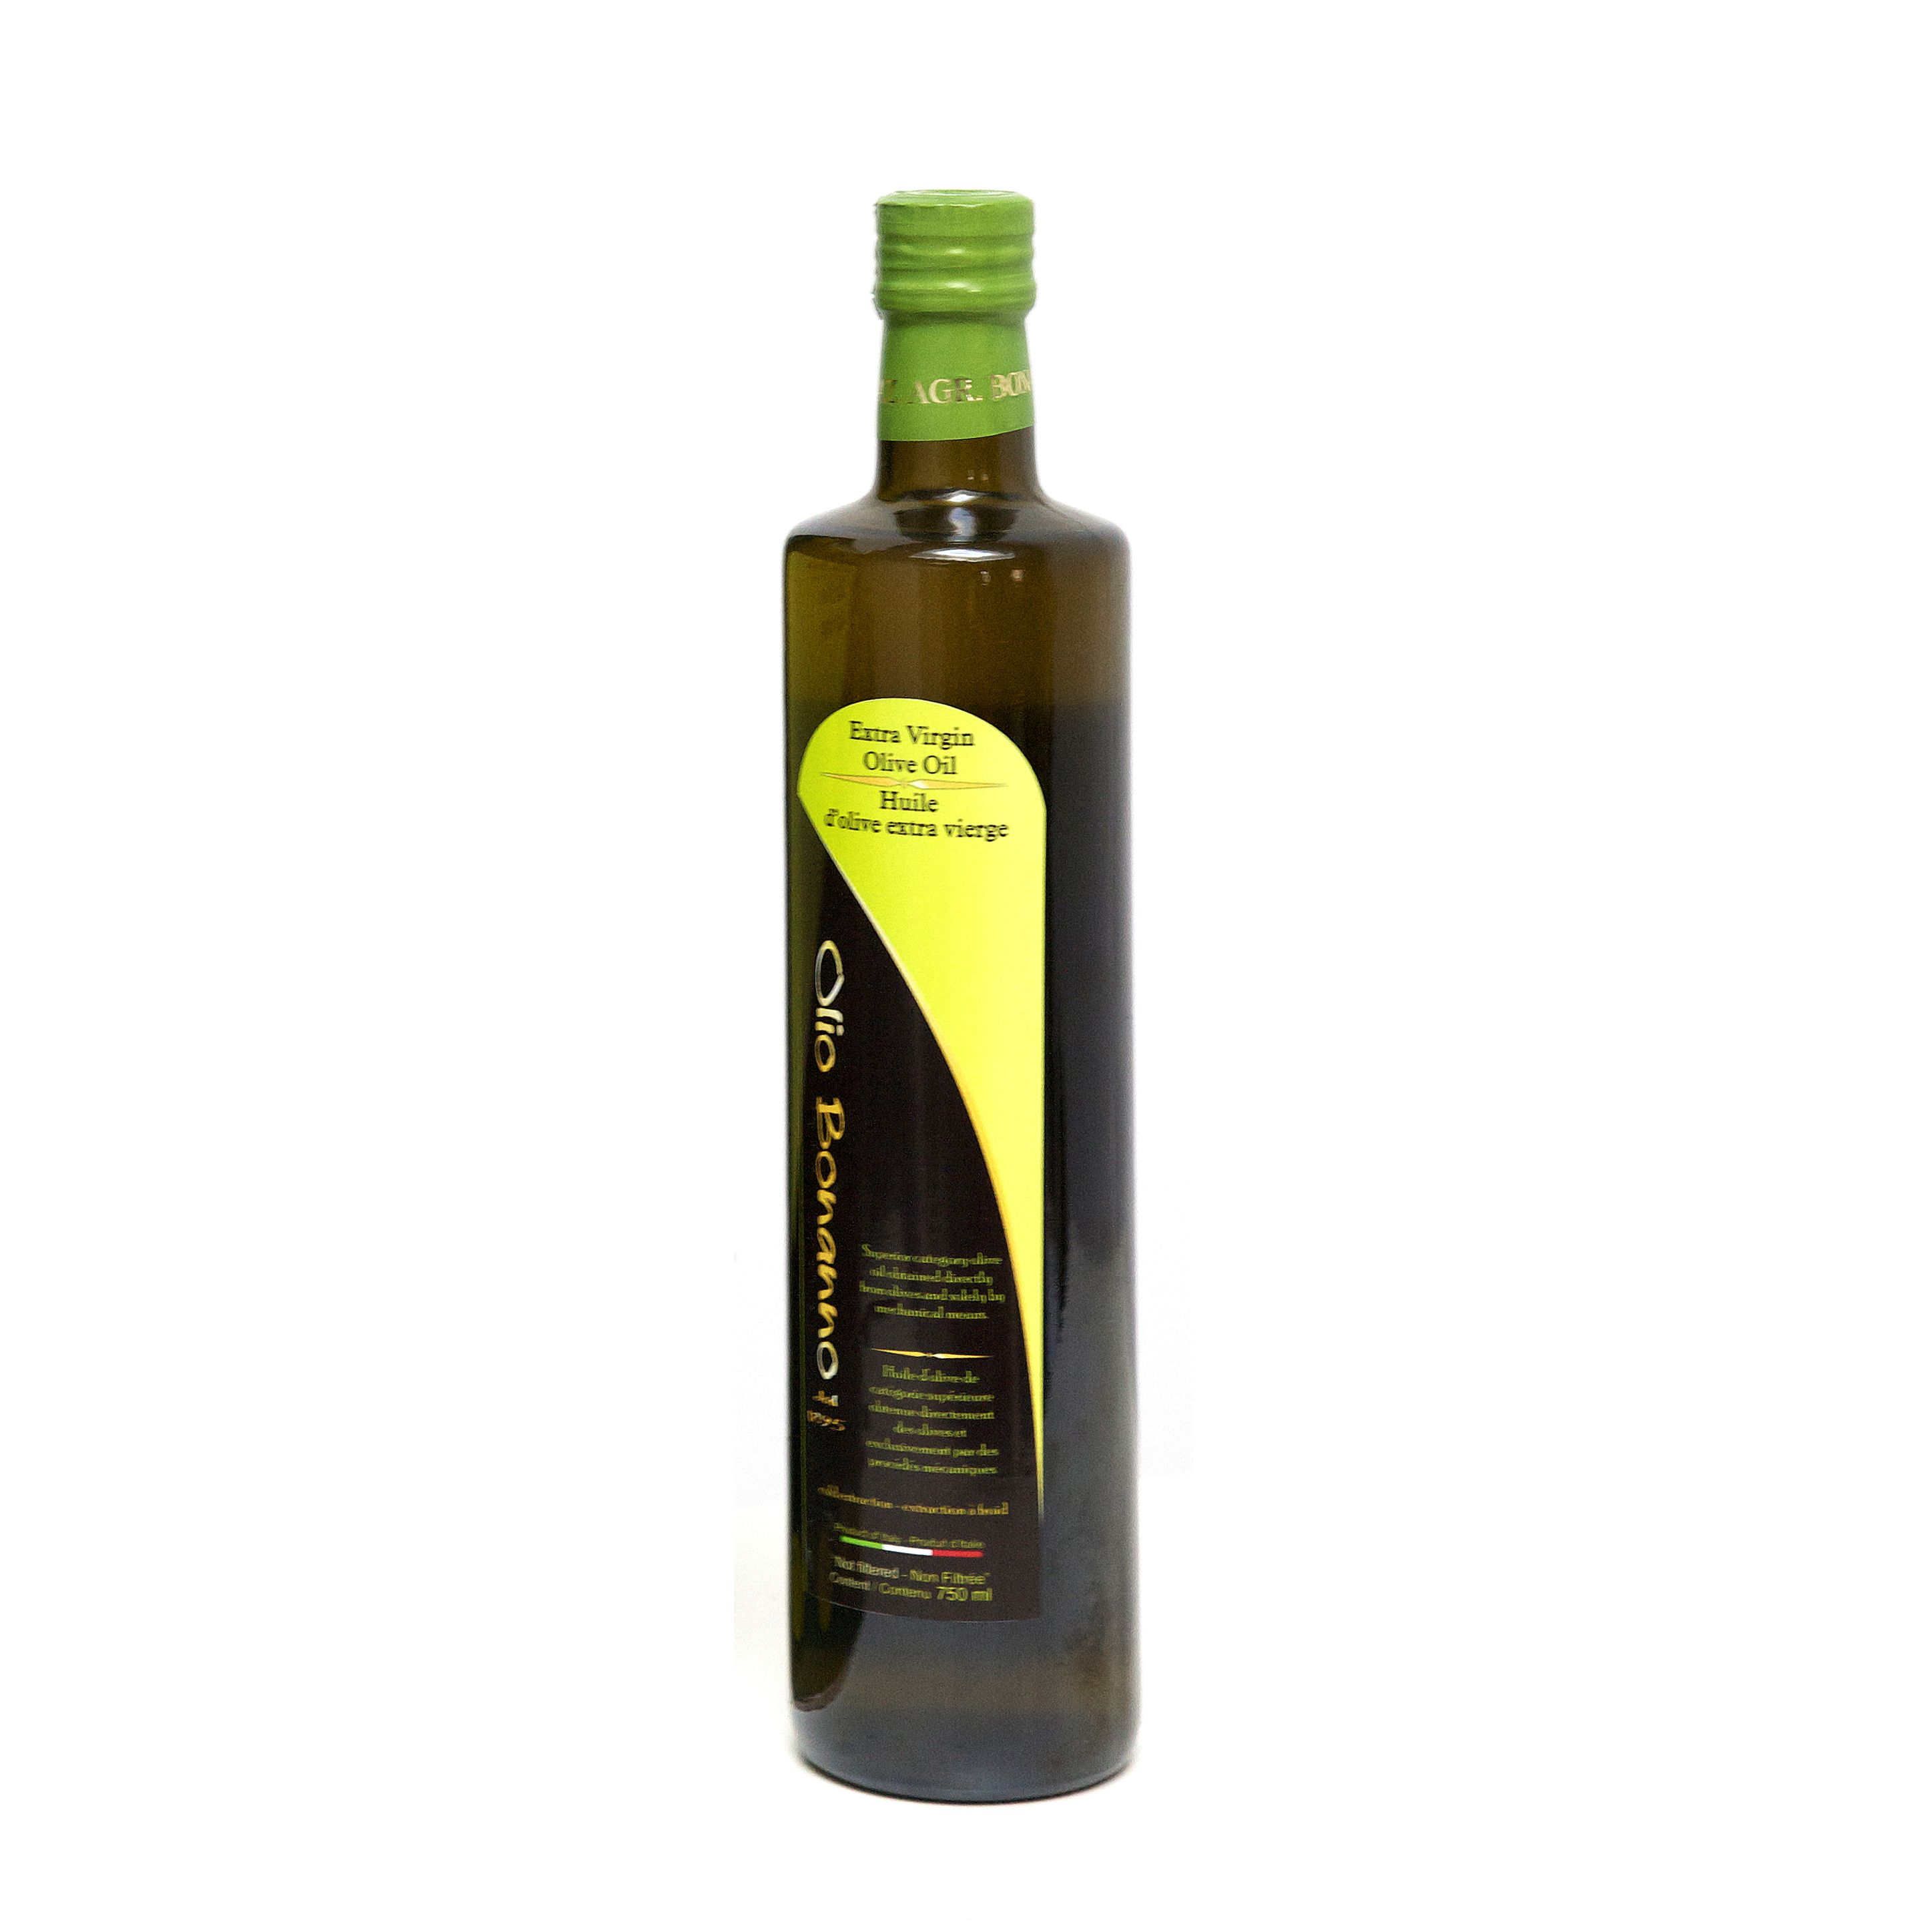 Bonanno Organic Olive Oil (750ml)